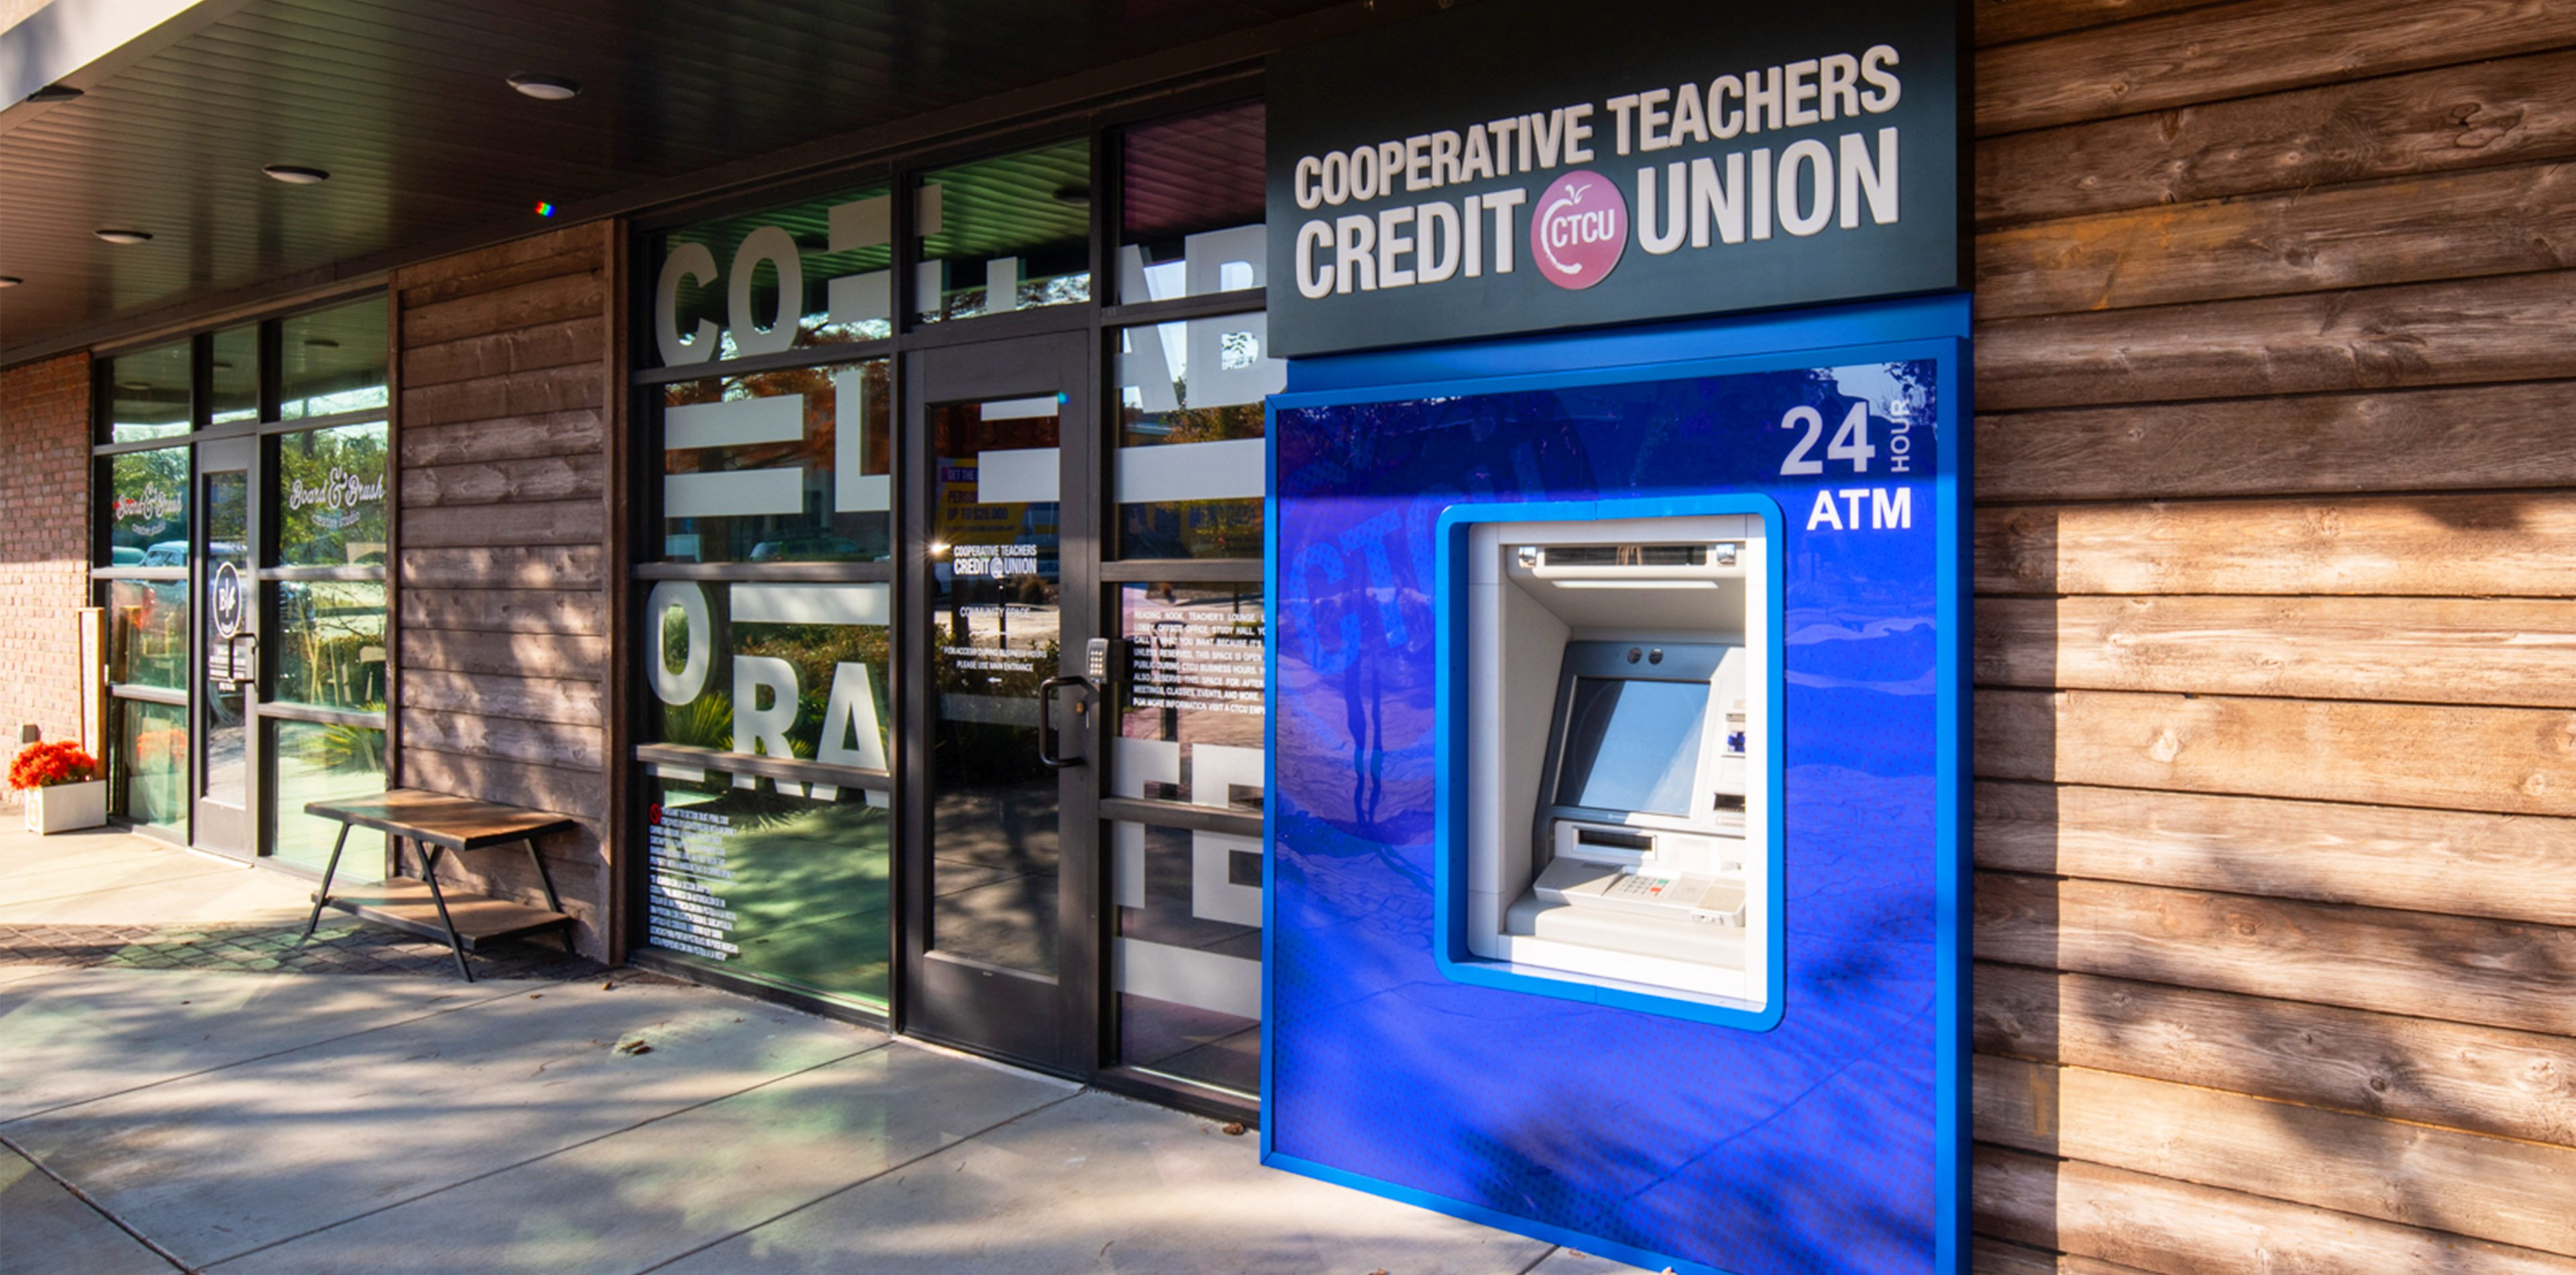 Cooperative Teachers Credit Union (CTCU) Case Study